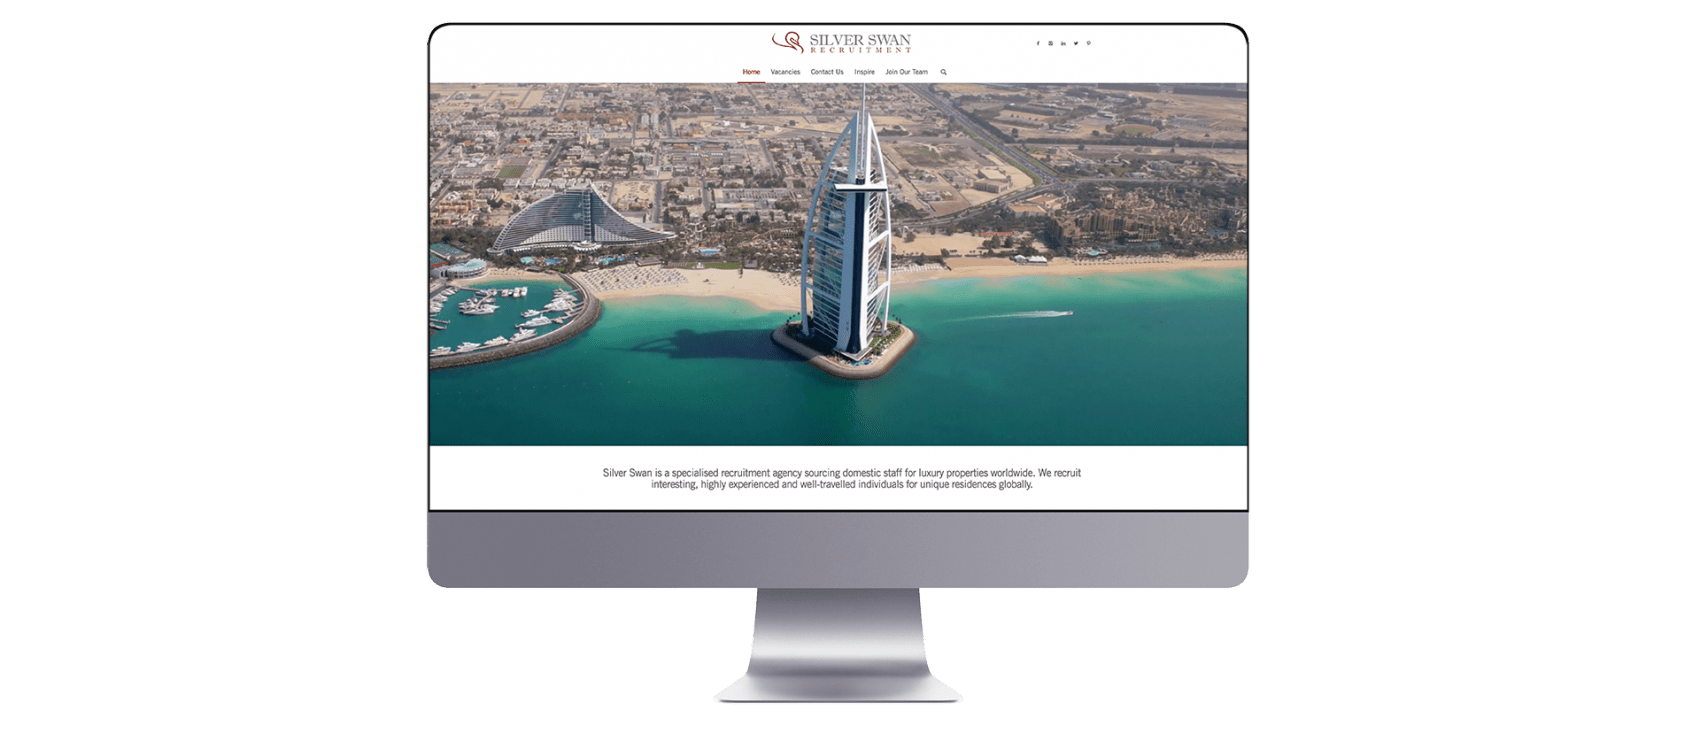 Silverswan website design on Mac